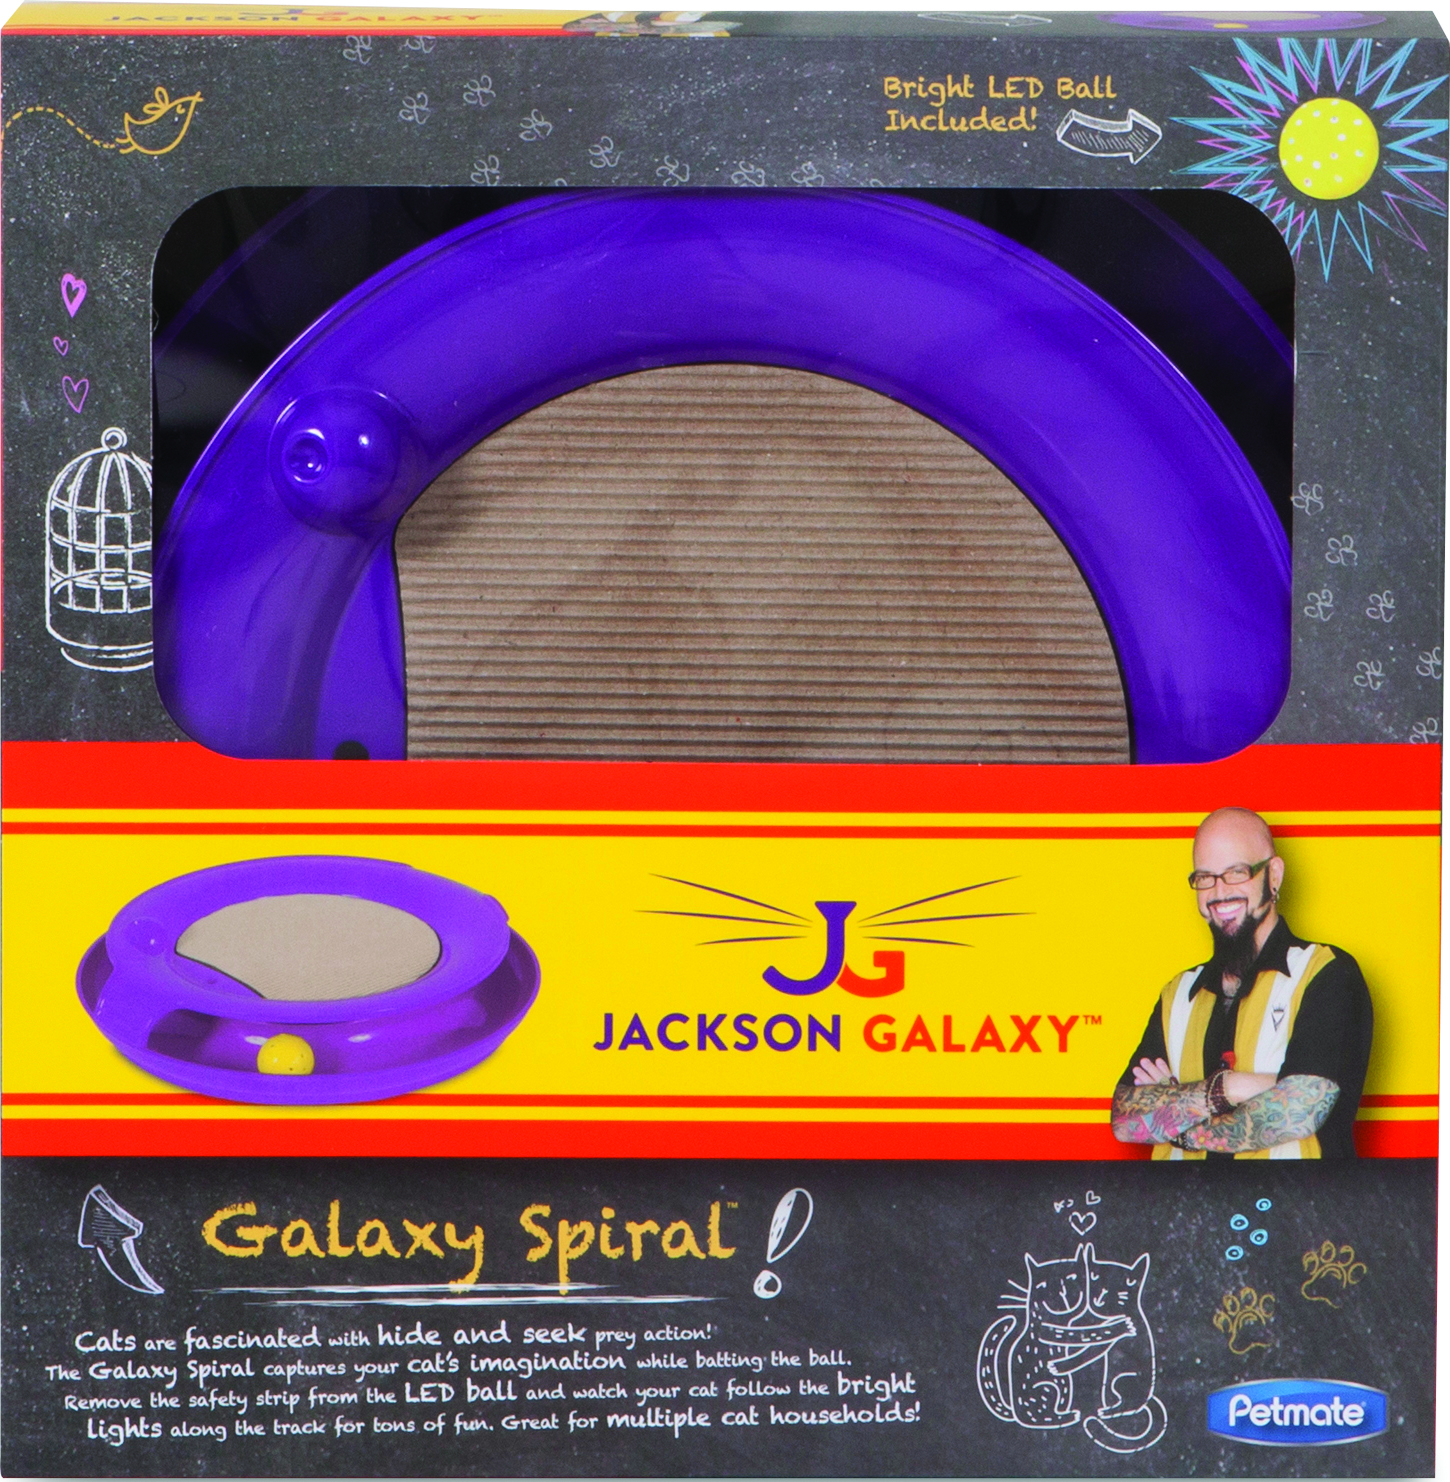 Petmate jackson galaxy spiral assorted dealtrend for Jackson galaxy